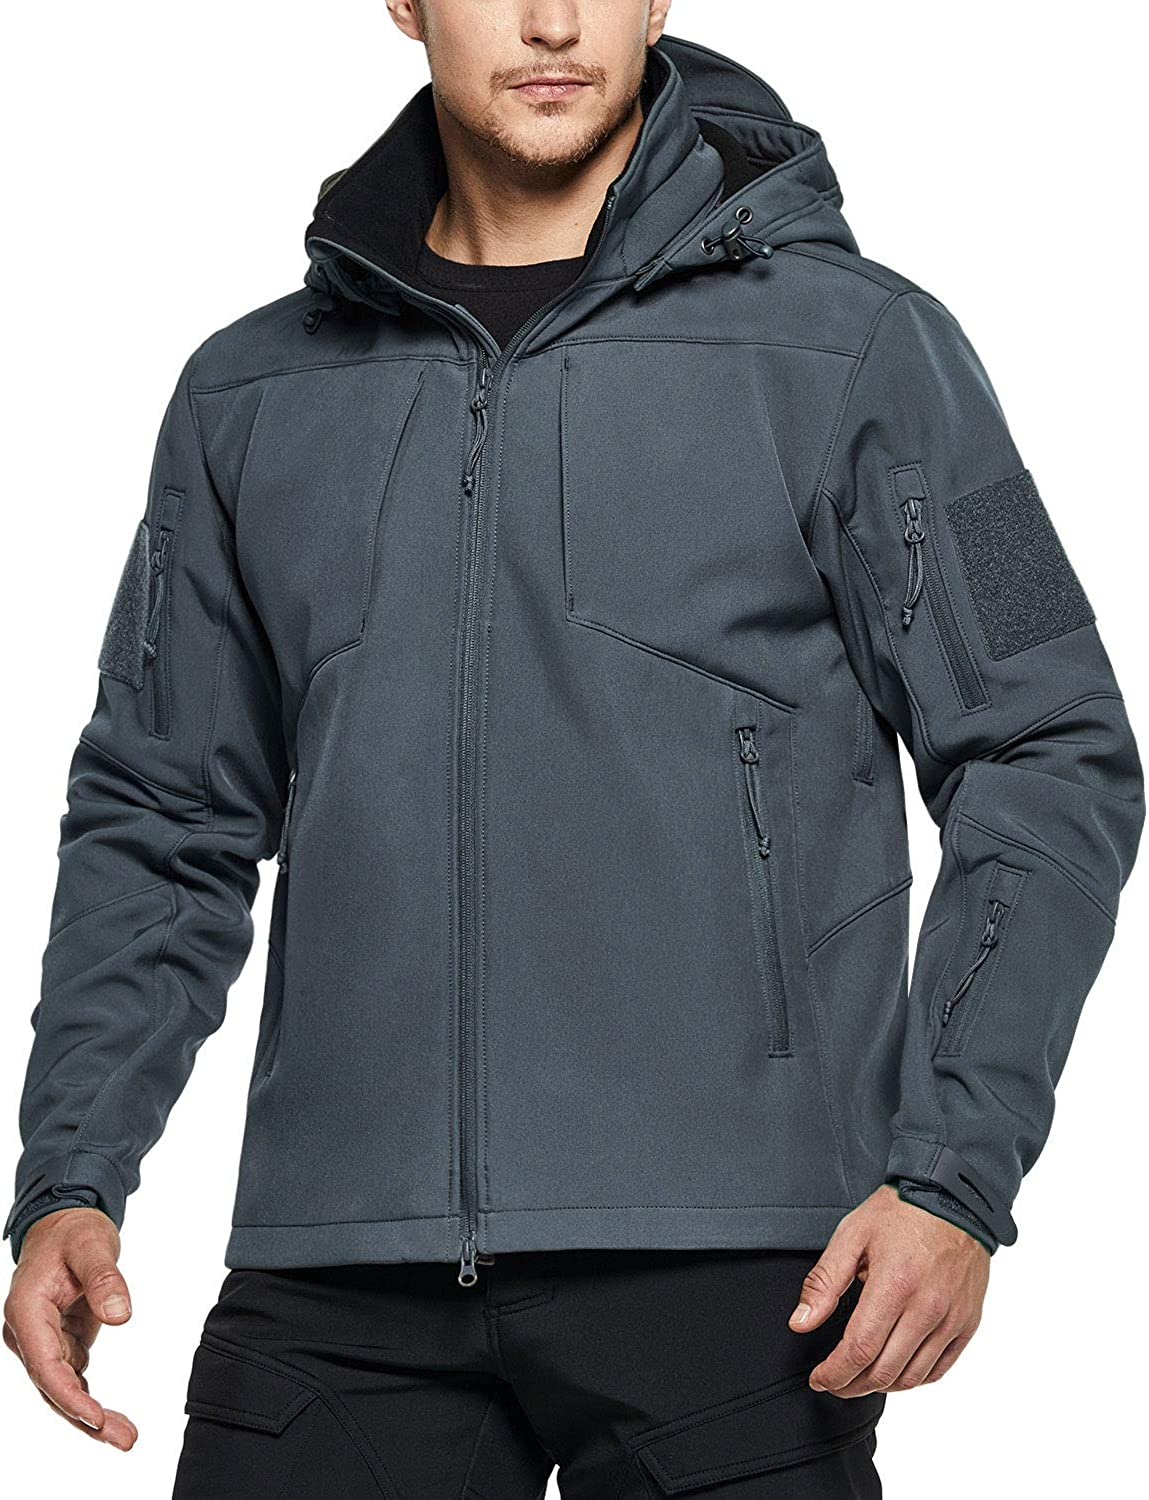 CQR Men's Winter Tactical Waterpro Max 70% OFF sold out Military Jackets Lightweight